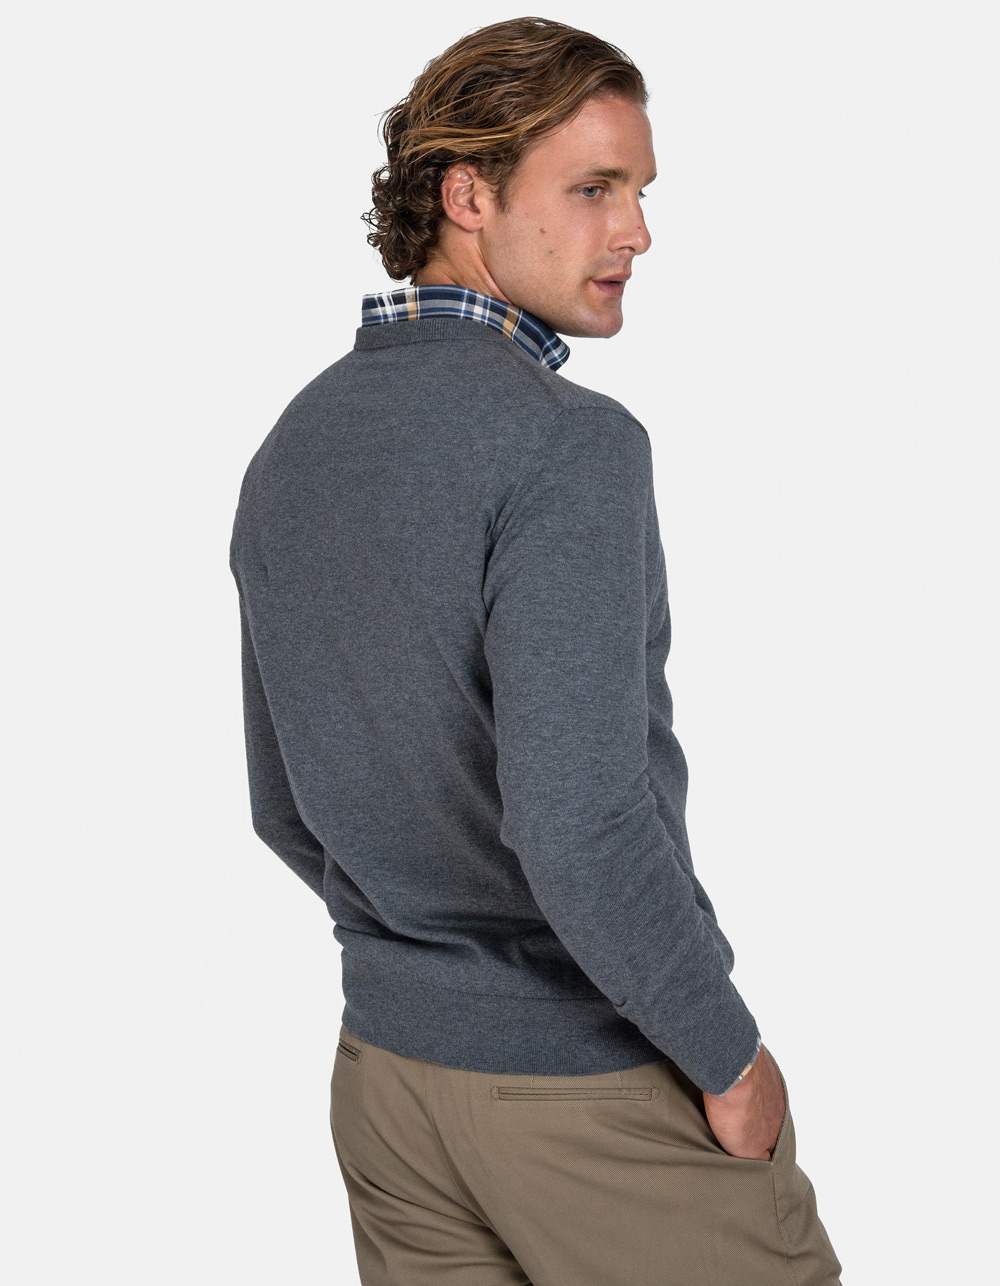 Grey v-neck sweater - Backside